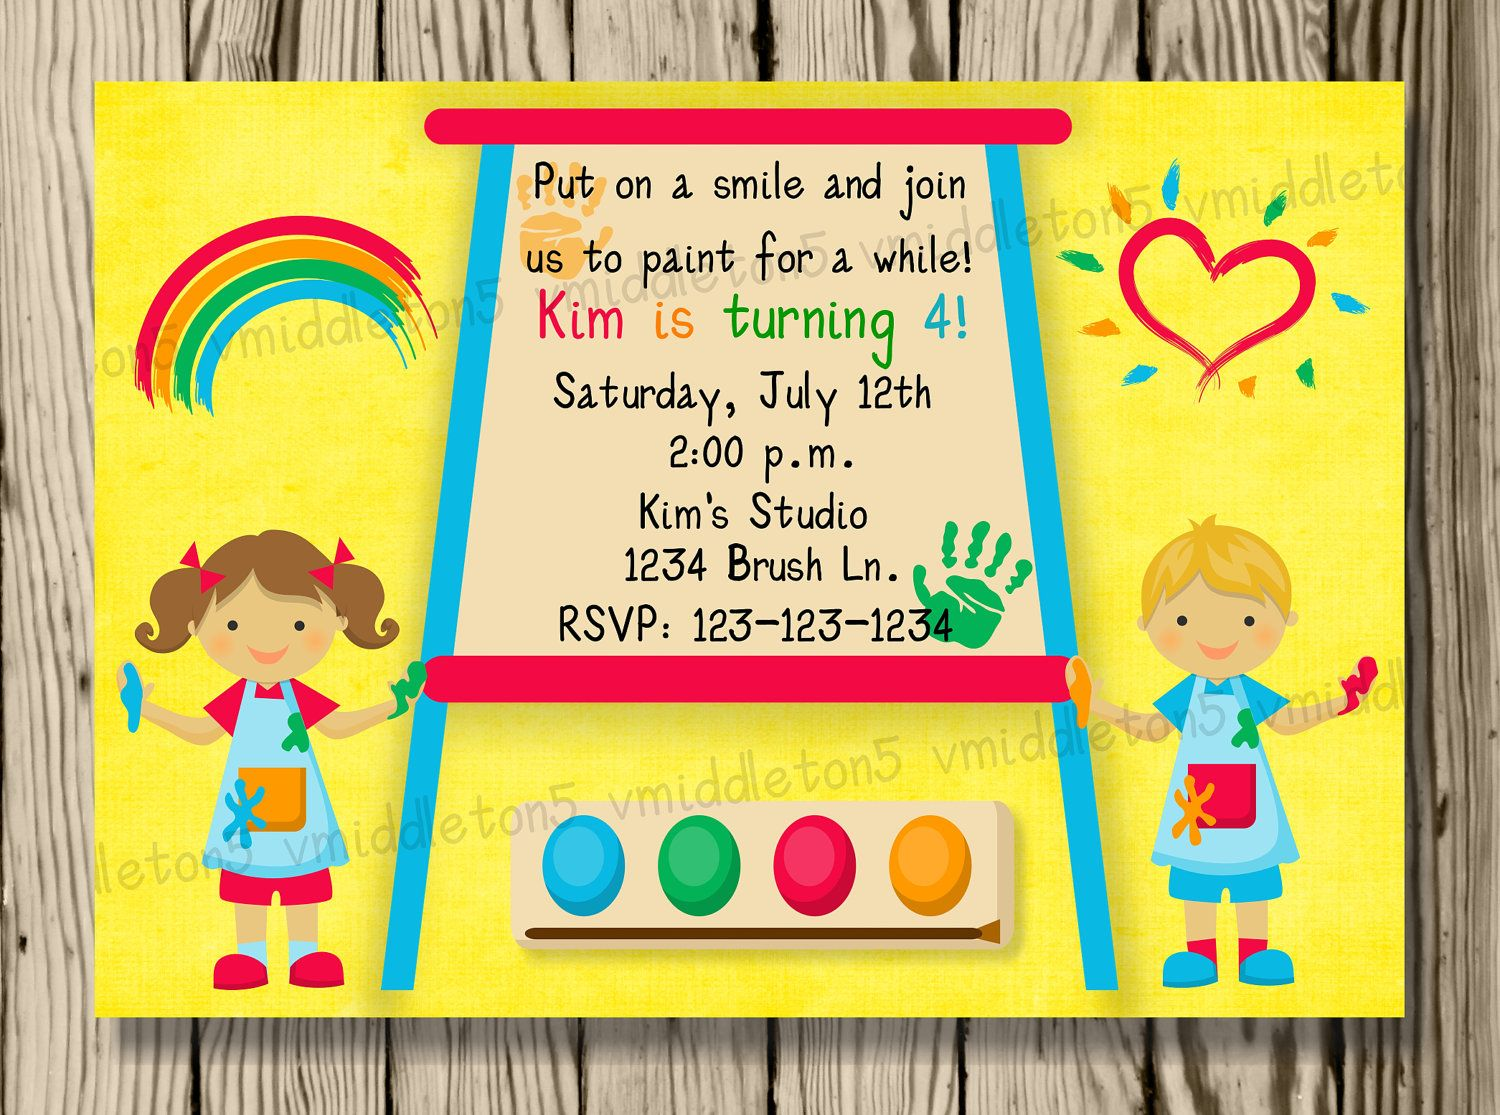 Kids Painting or Art Party Invitation | Birthday Party Ideas ...